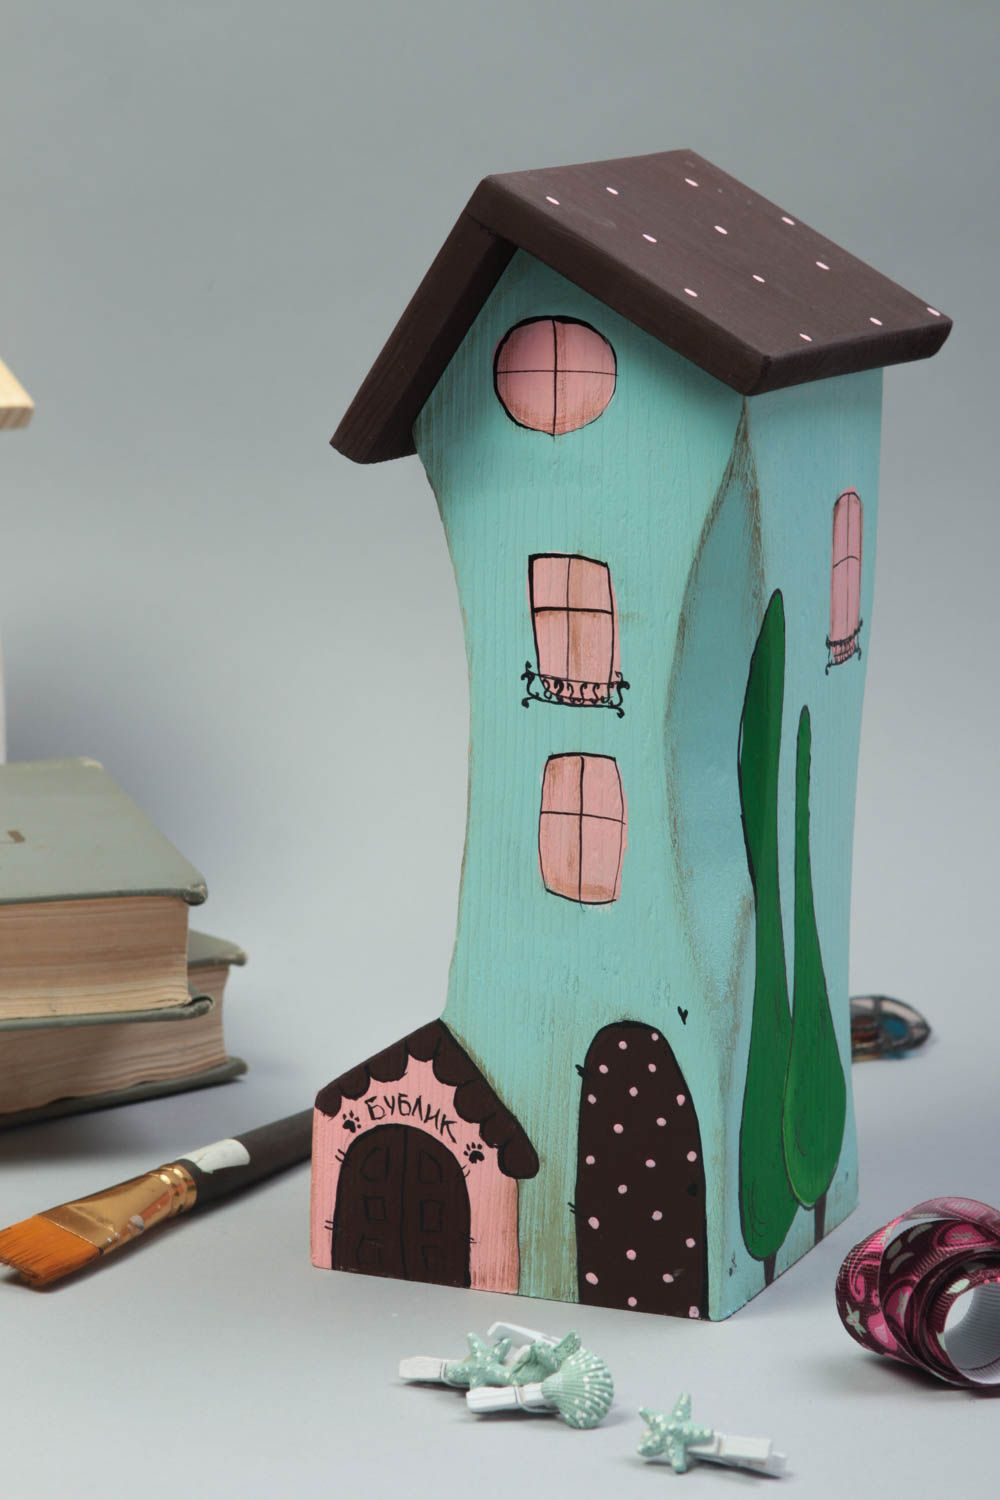 Handmade Wood Toy Home Decor Ideas Wooden Carvings On Storenvy